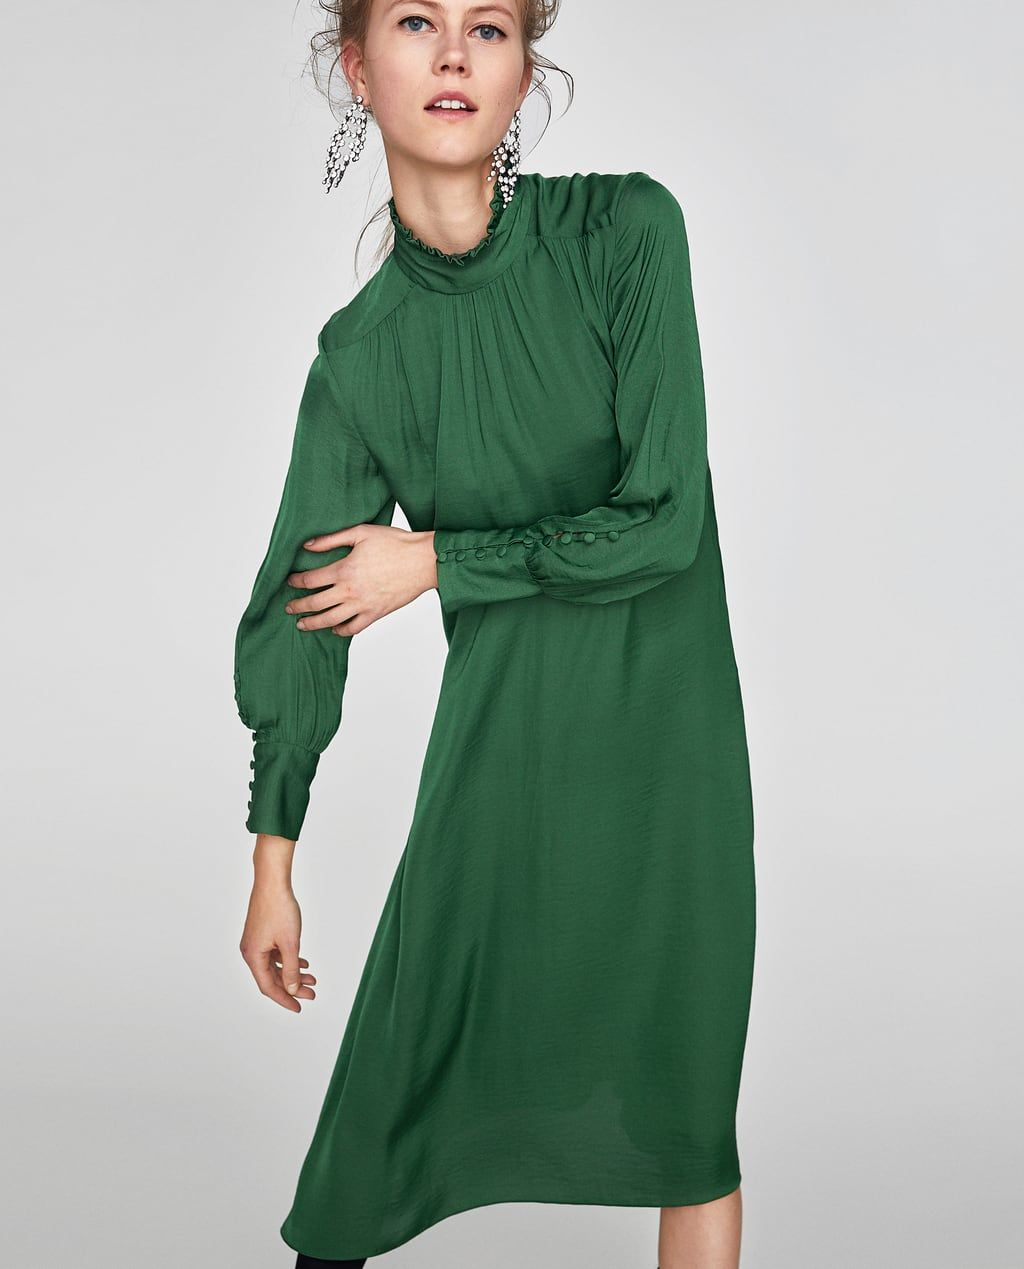 ccfd6888f0ac FLOWING MIDI DRESS WITH LONG SLEEVES-NEW IN-WOMAN | ZARA United States